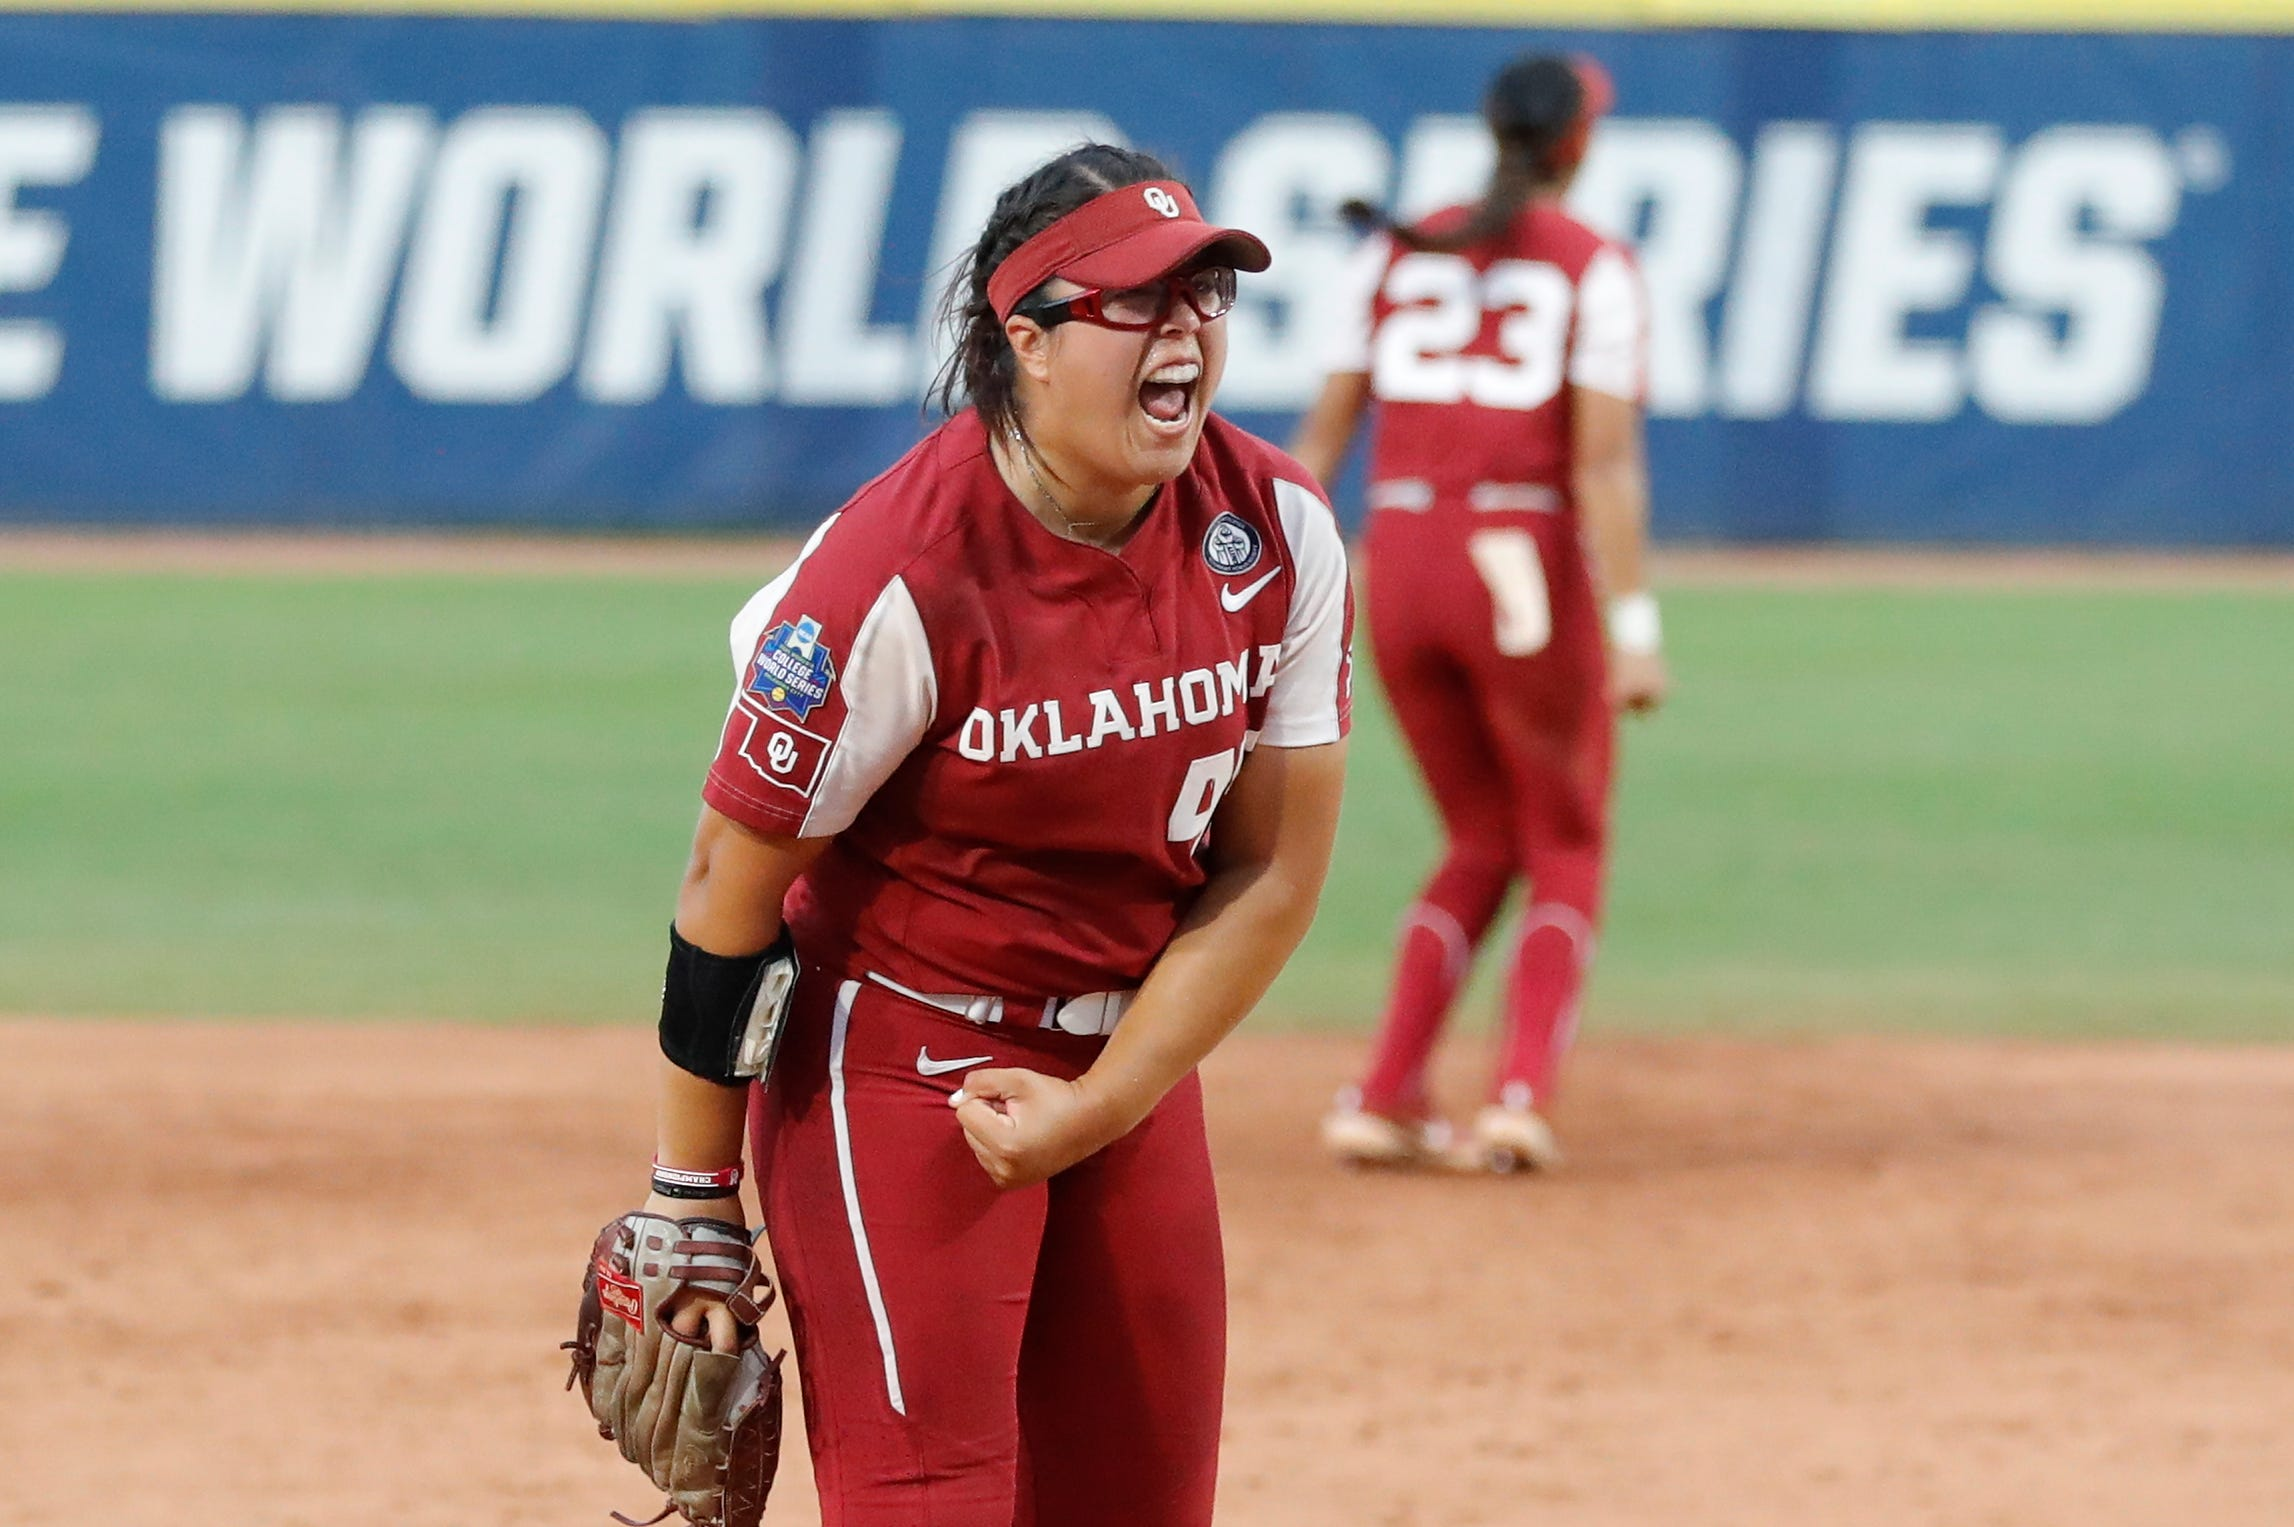 Oklahoma beats Florida State to force decisive Game 3 in WCWS championship series